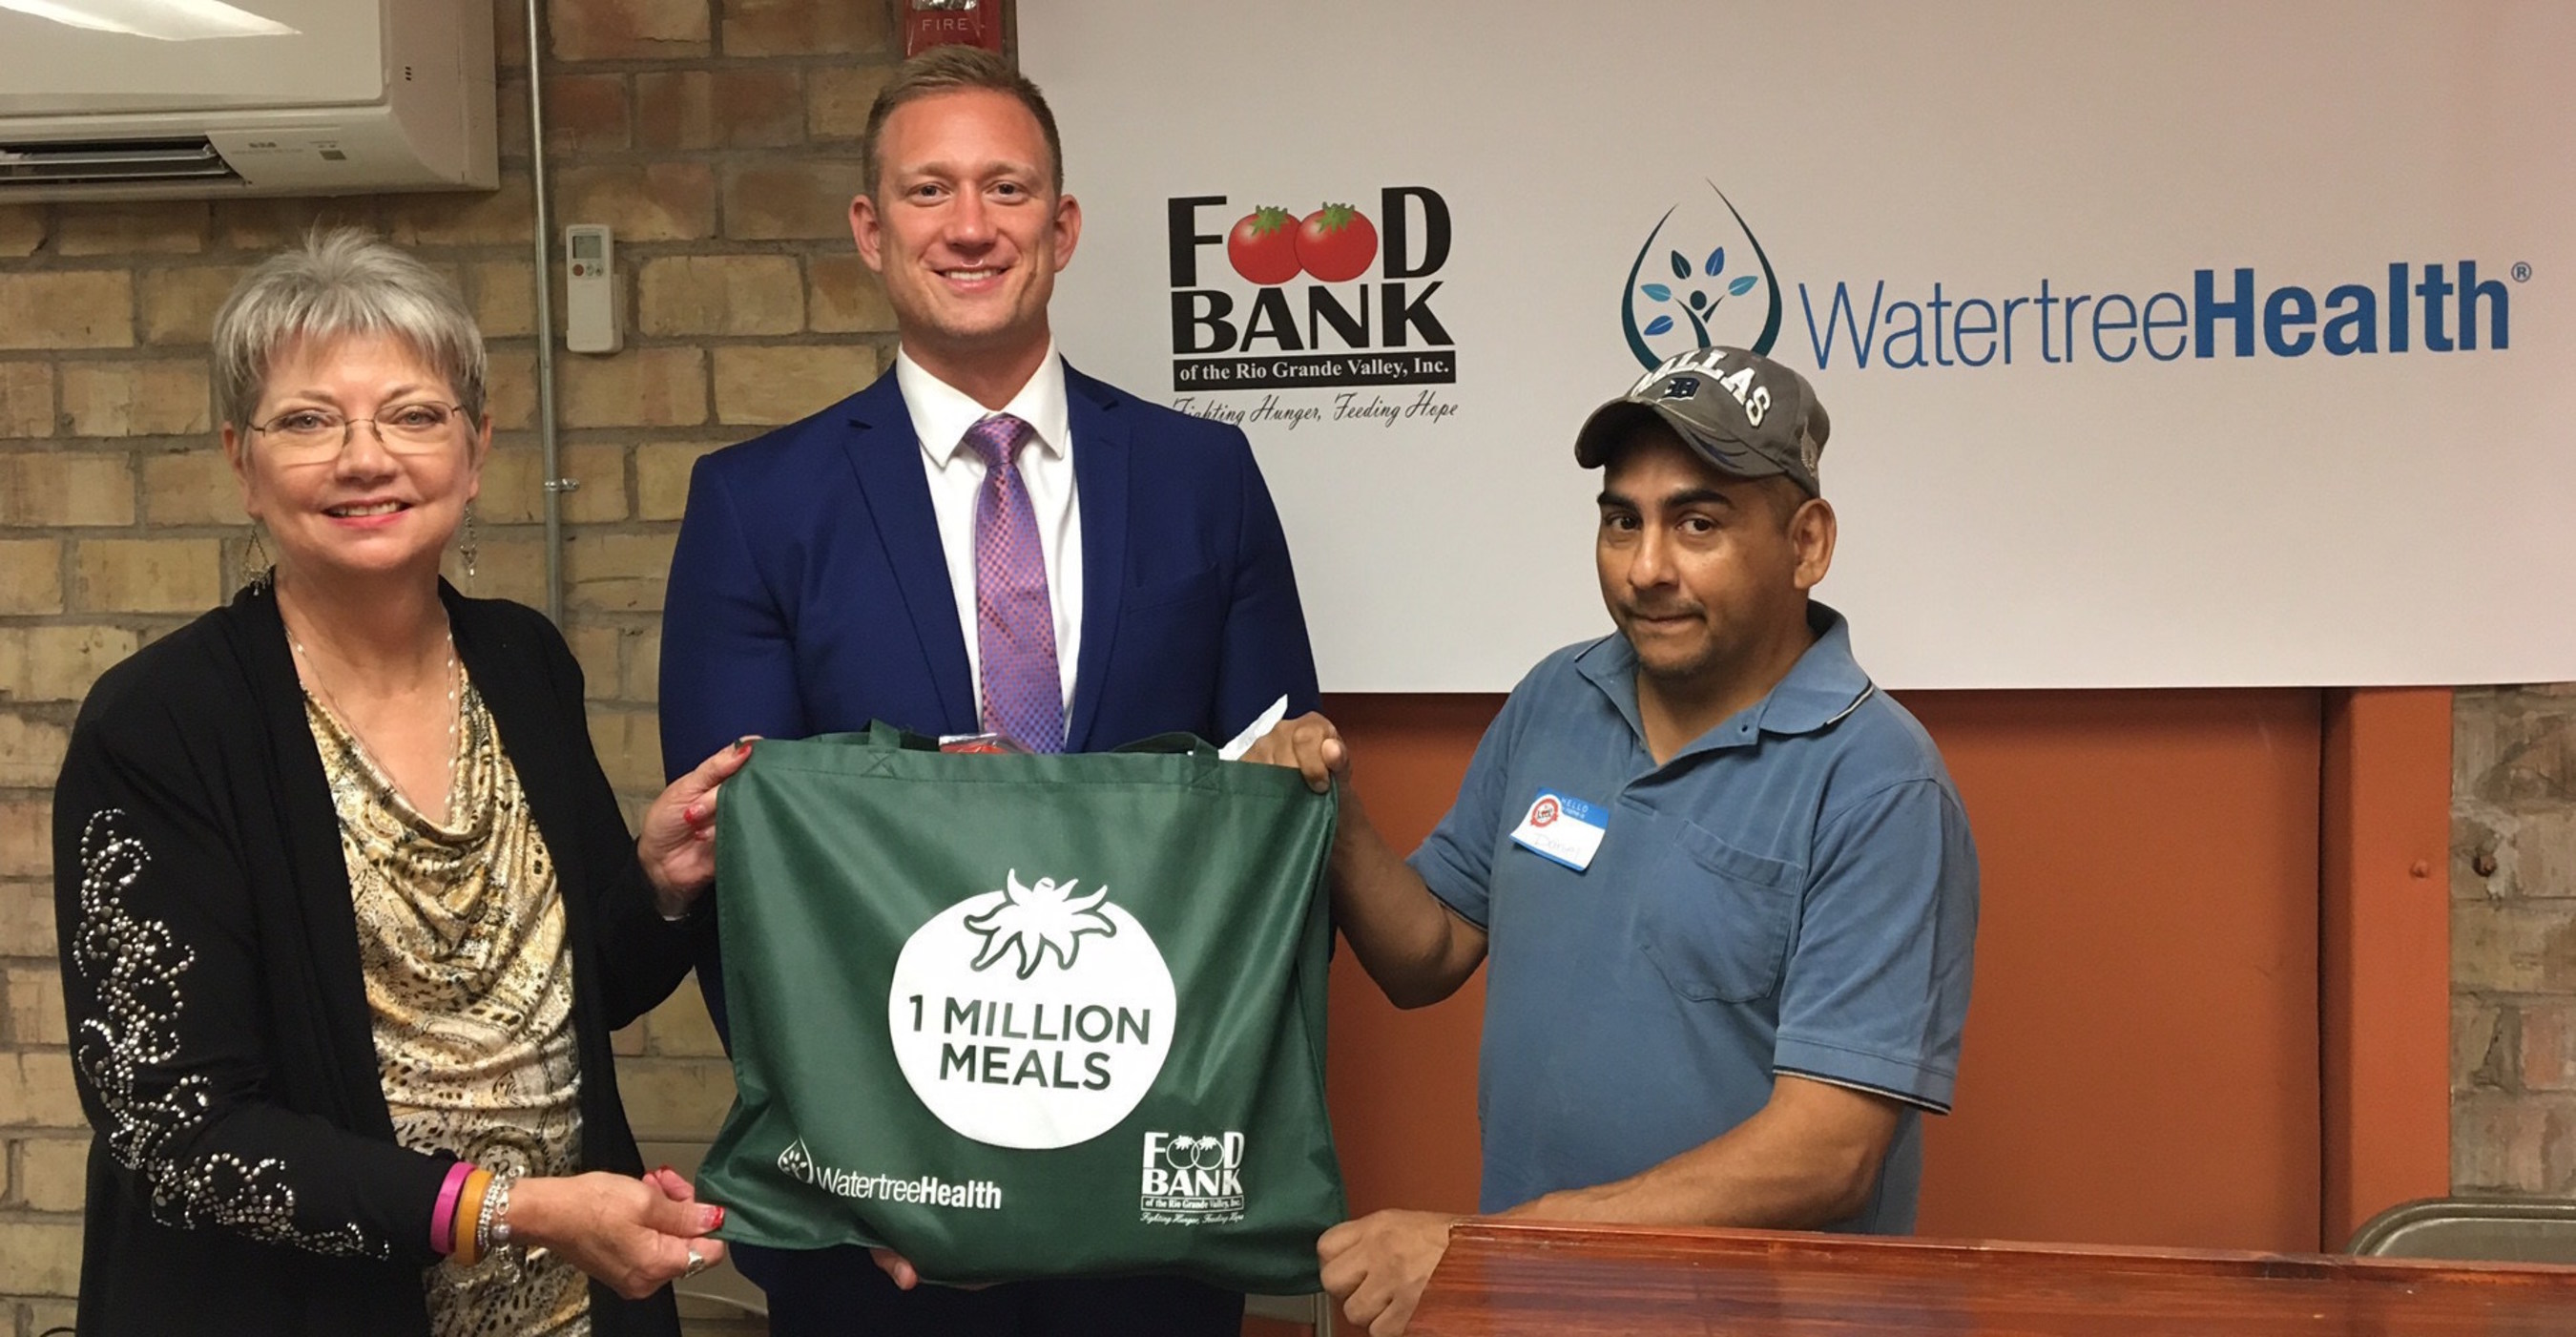 CEO of the Food Bank of the Rio Grande Valley Terri Drefke and Watertree Health President Shane Power present the One Millionth Meal to Food Bank RGV Client Mr. Torres Jr. at a press conference held today at Food Bank RGV, as part of the celebration of Two Million Meals.